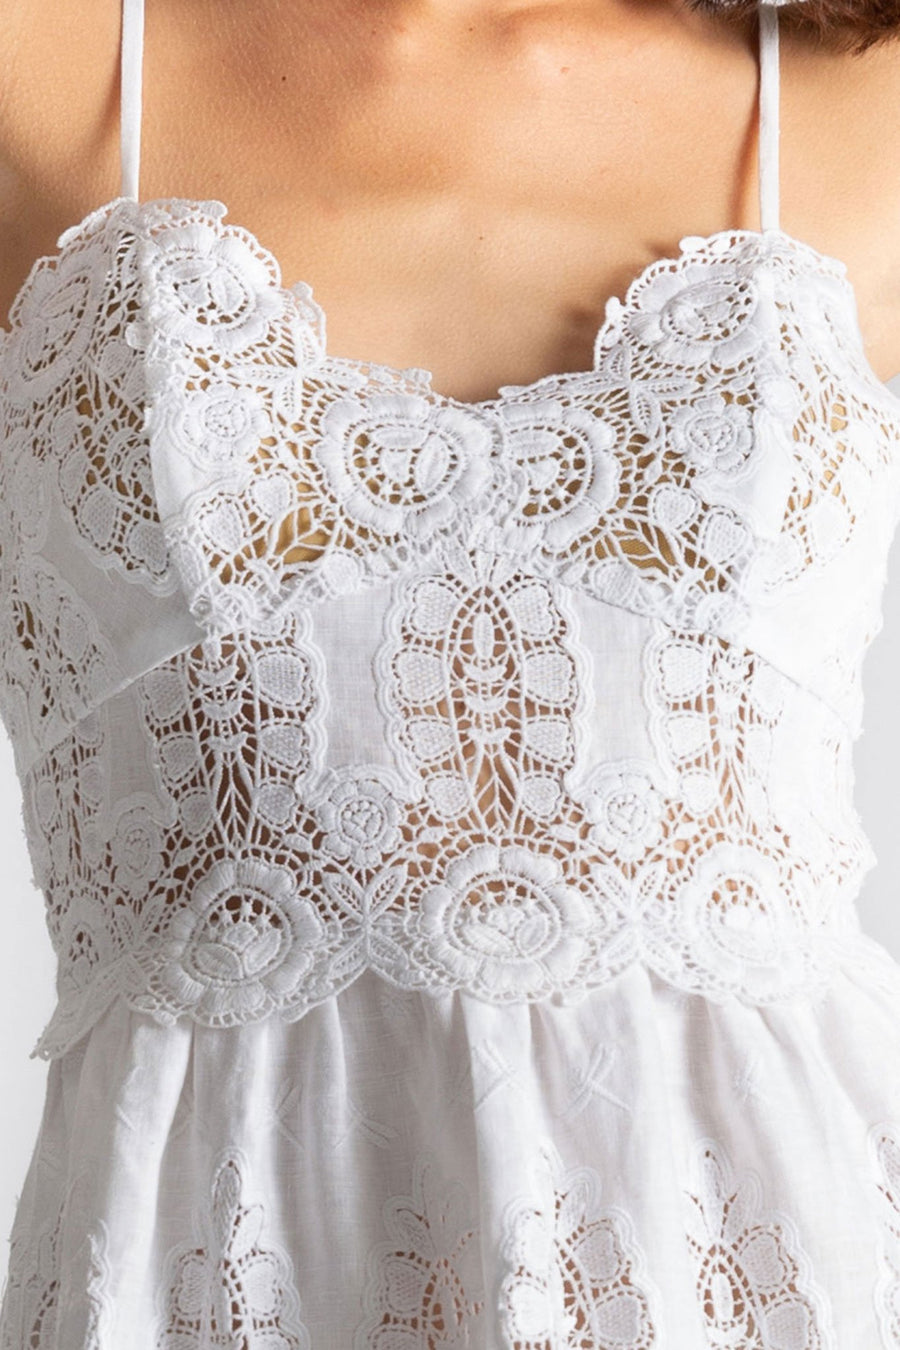 This is a detail photo of the top of a white linen and lace dress with a sweetheart neckline. The lace details show flowers and dragonflies.